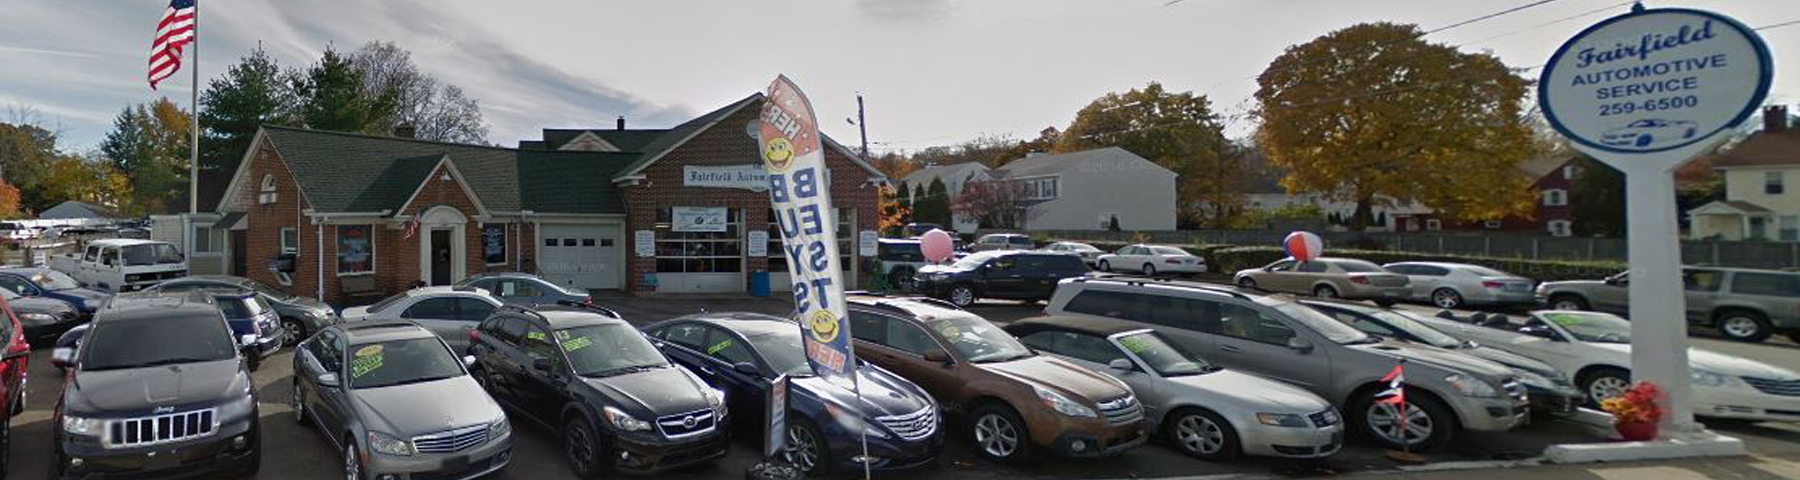 Fairfield Automotive Service Expert Auto Repair